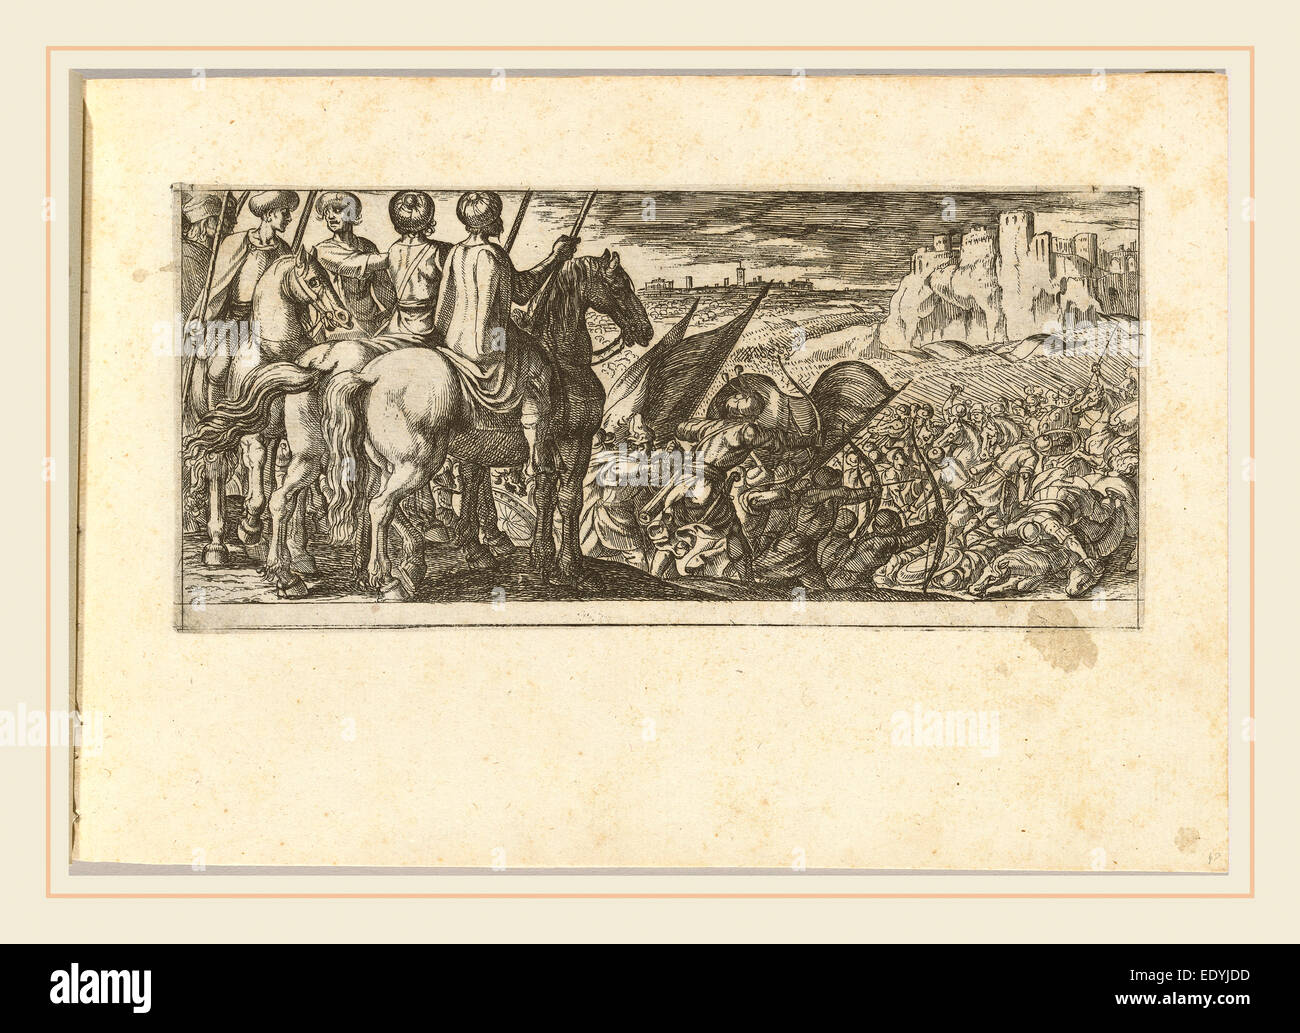 Antonio Tempesta, Italian (1555-1630), Battle Scene with Cavalry Observing from a Hill, etching - Stock Image